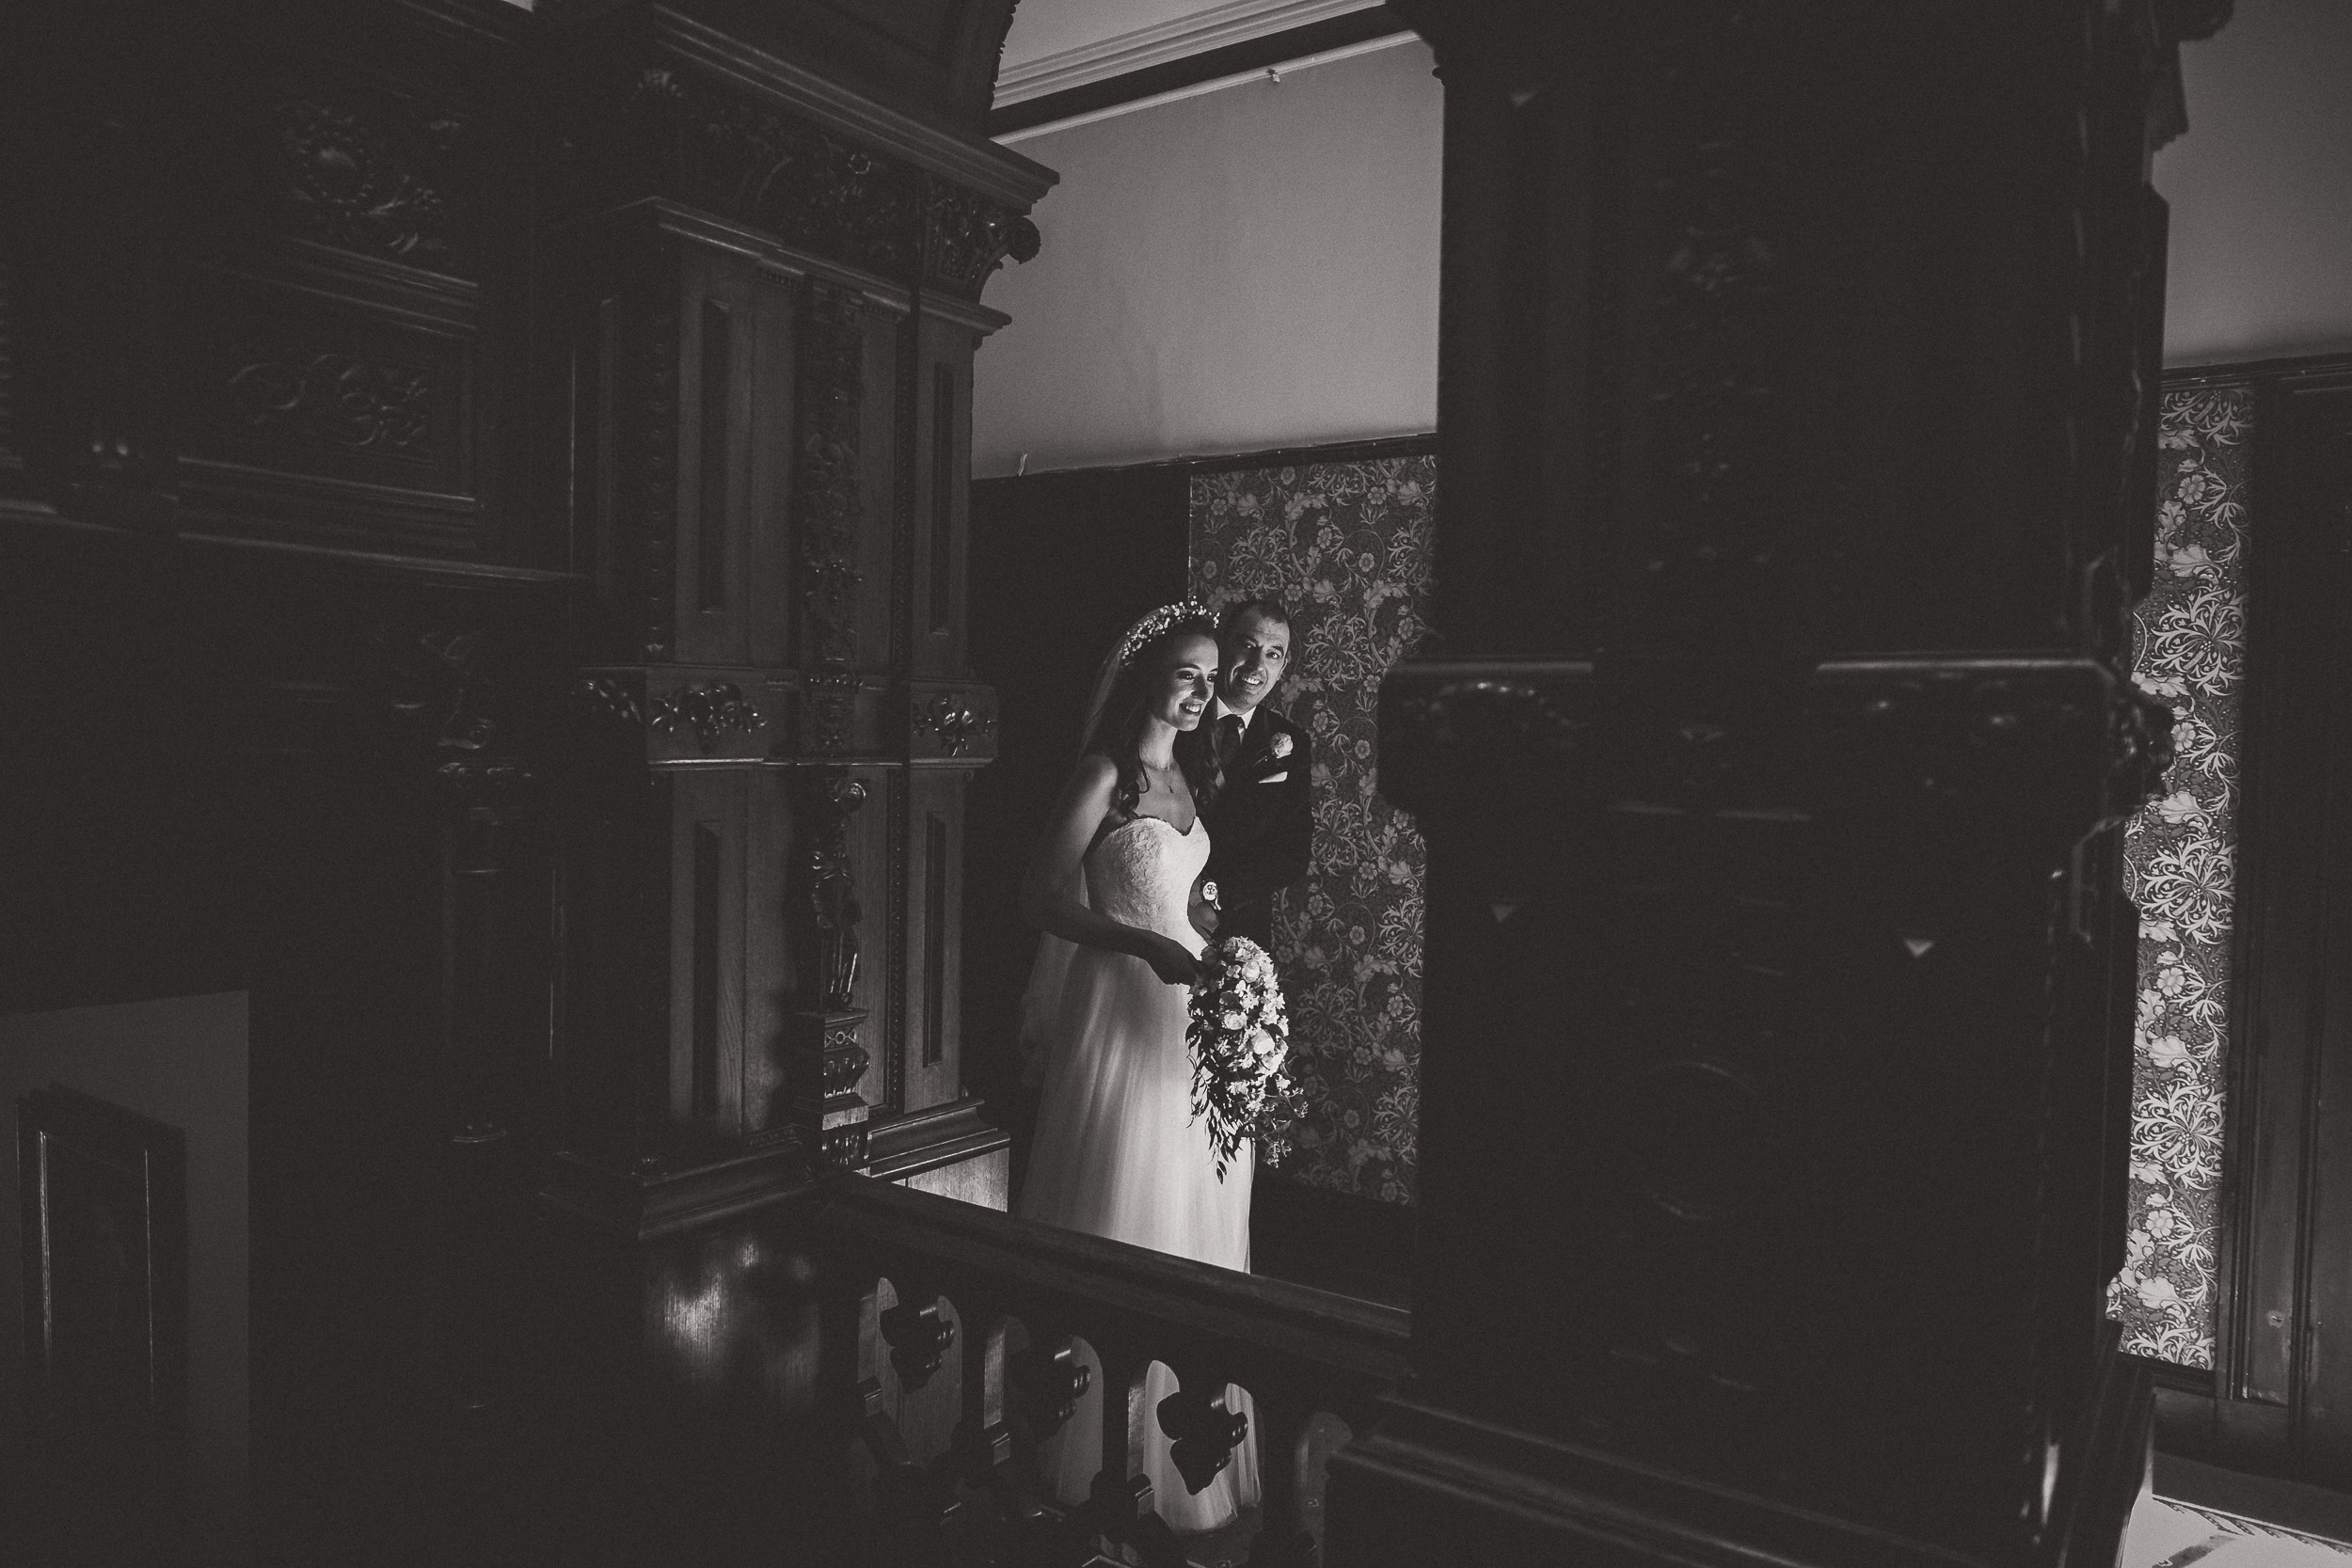 Wiston House Wedding Photography | Helouise & Alex Wiston house wedding photographer 009